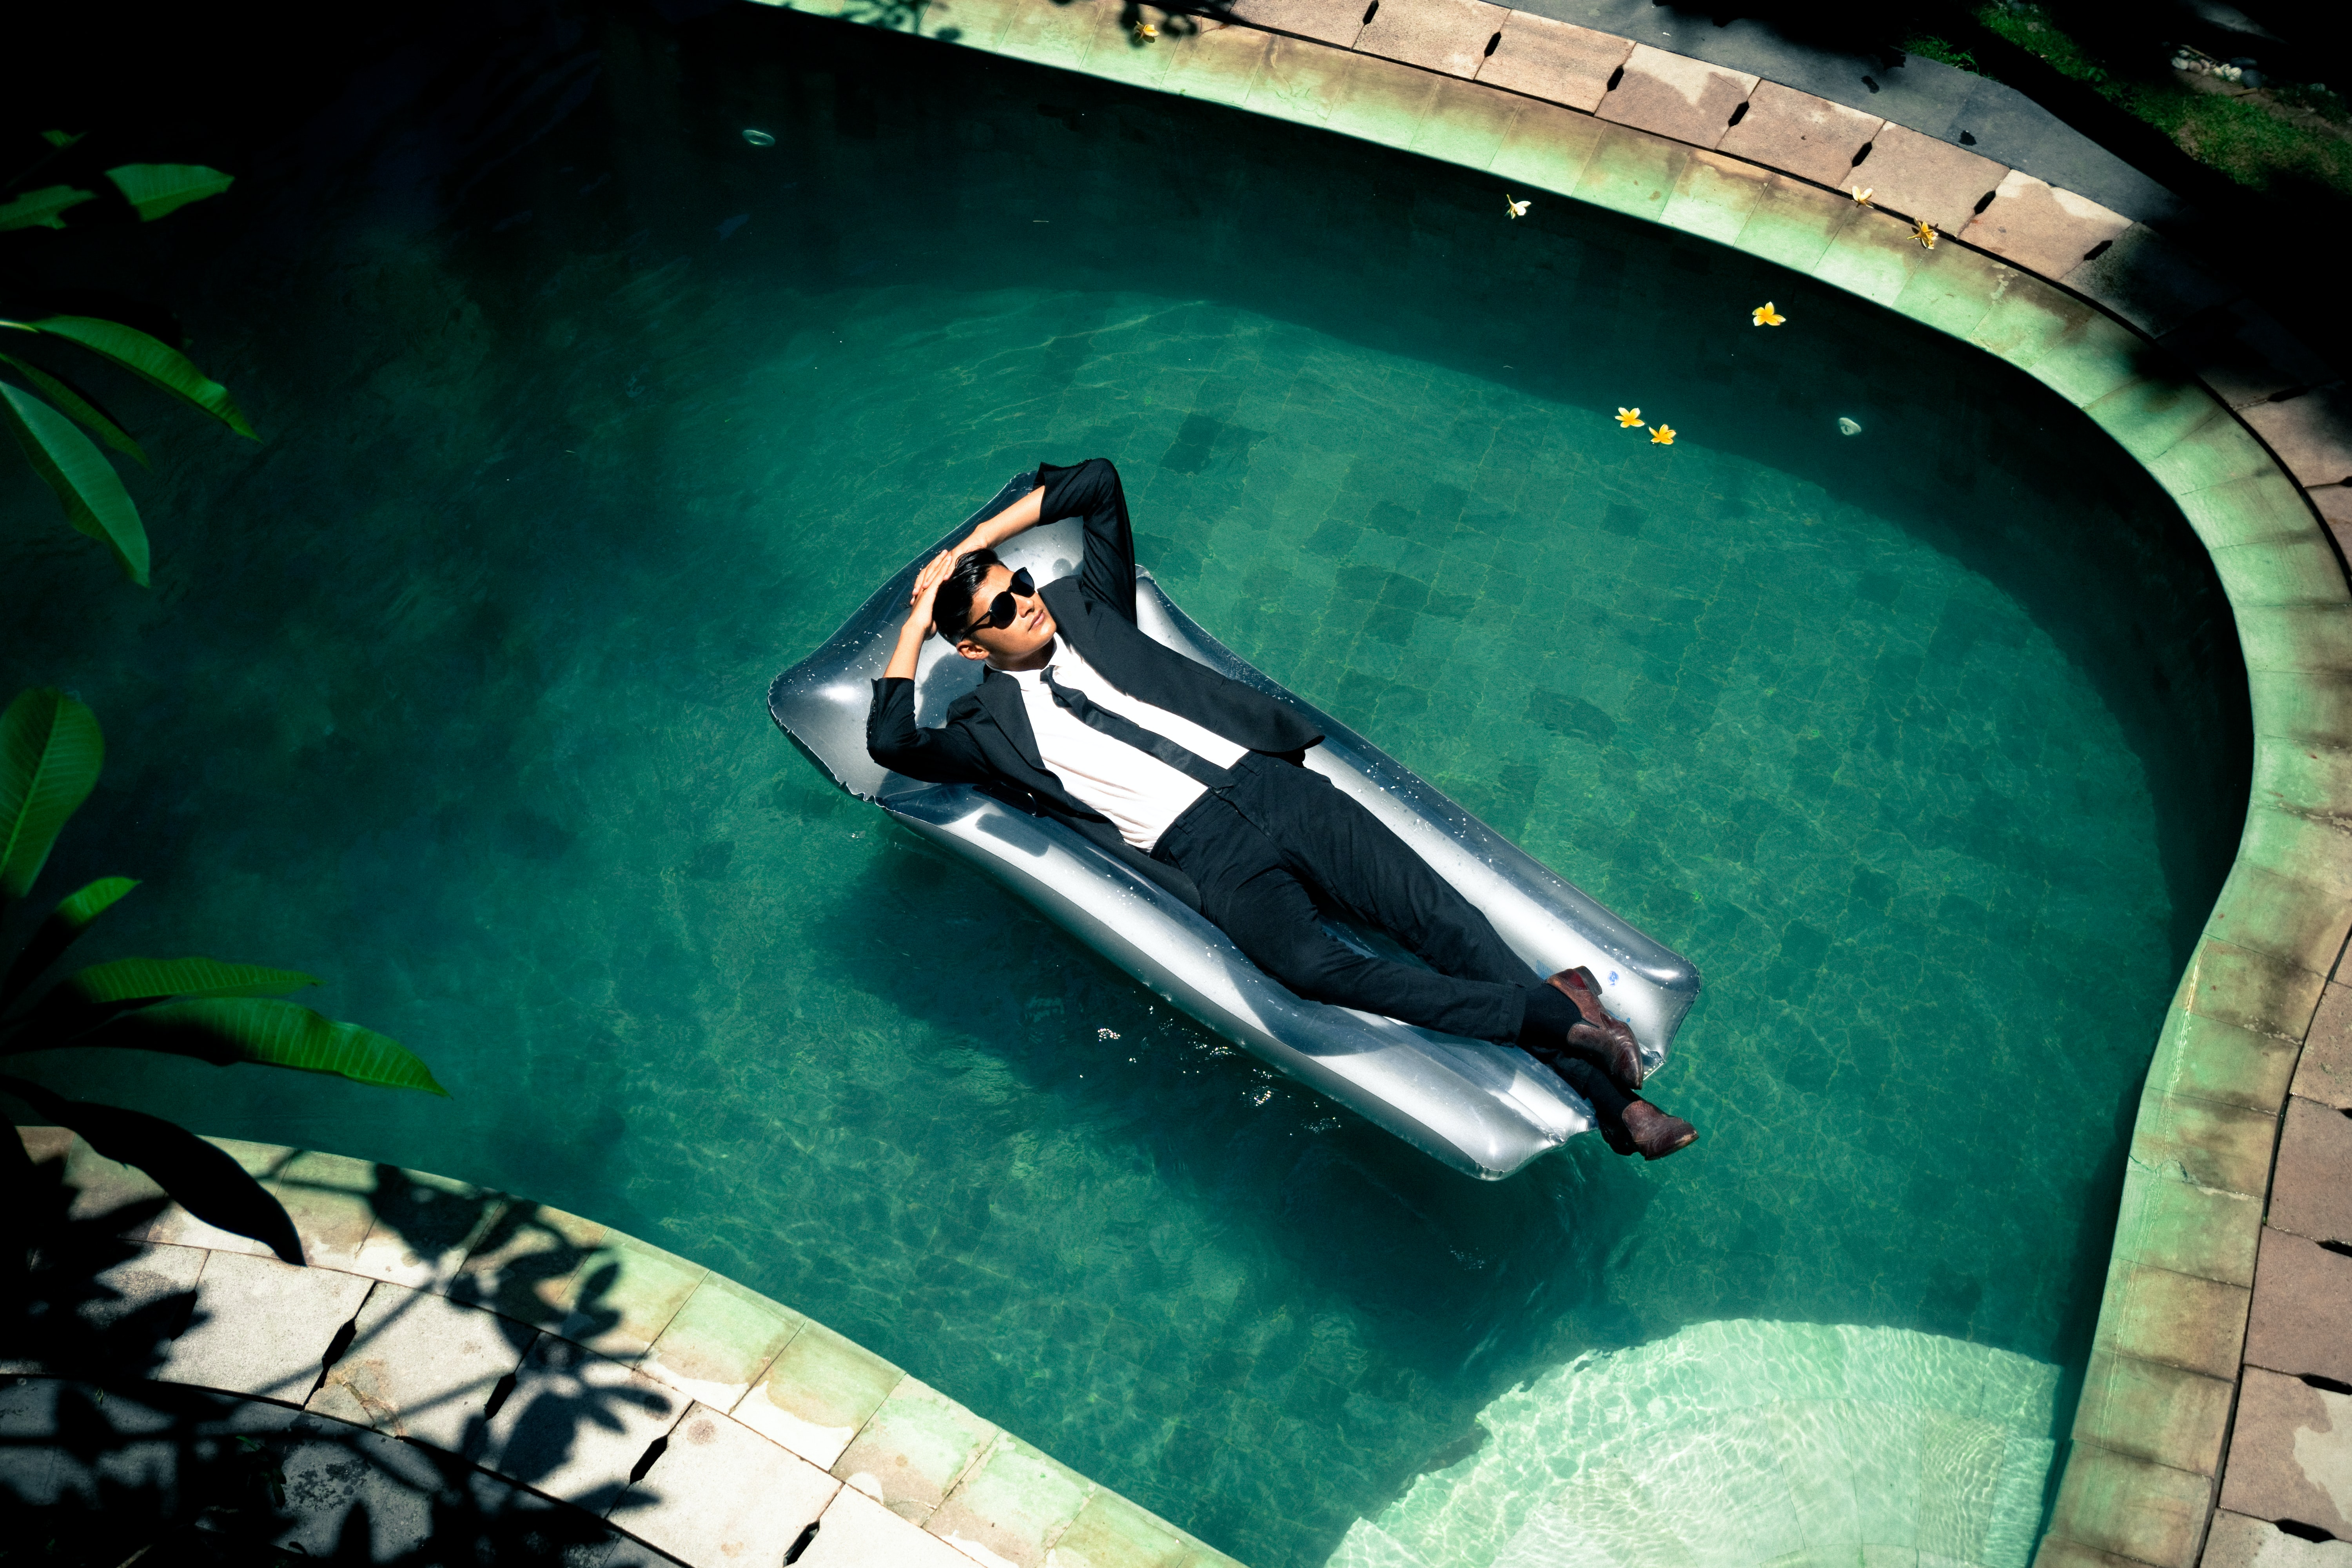 A man in a black formal suit on a float in a swimming pool